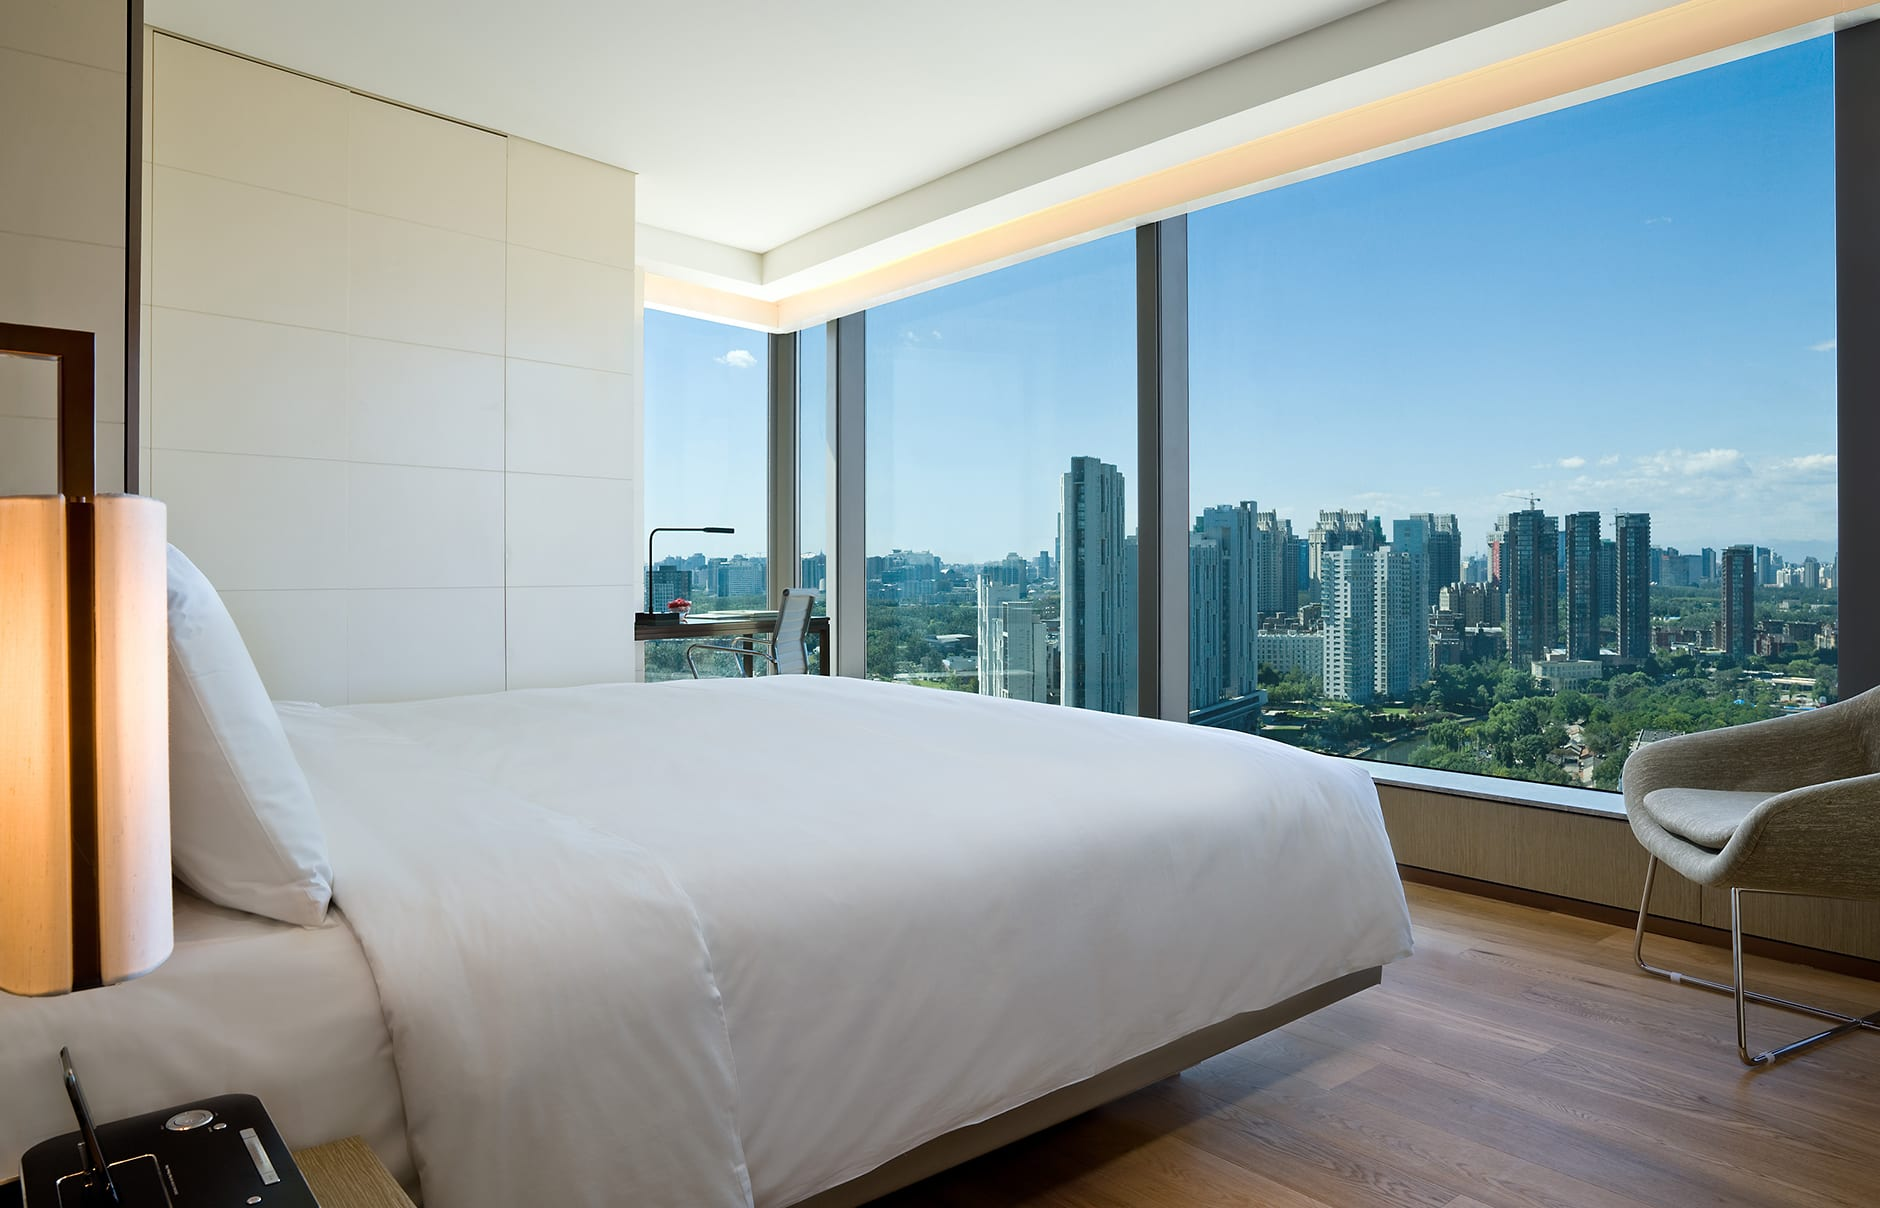 Upstairs suite. EAST Beijing, China. © Swire Hotels